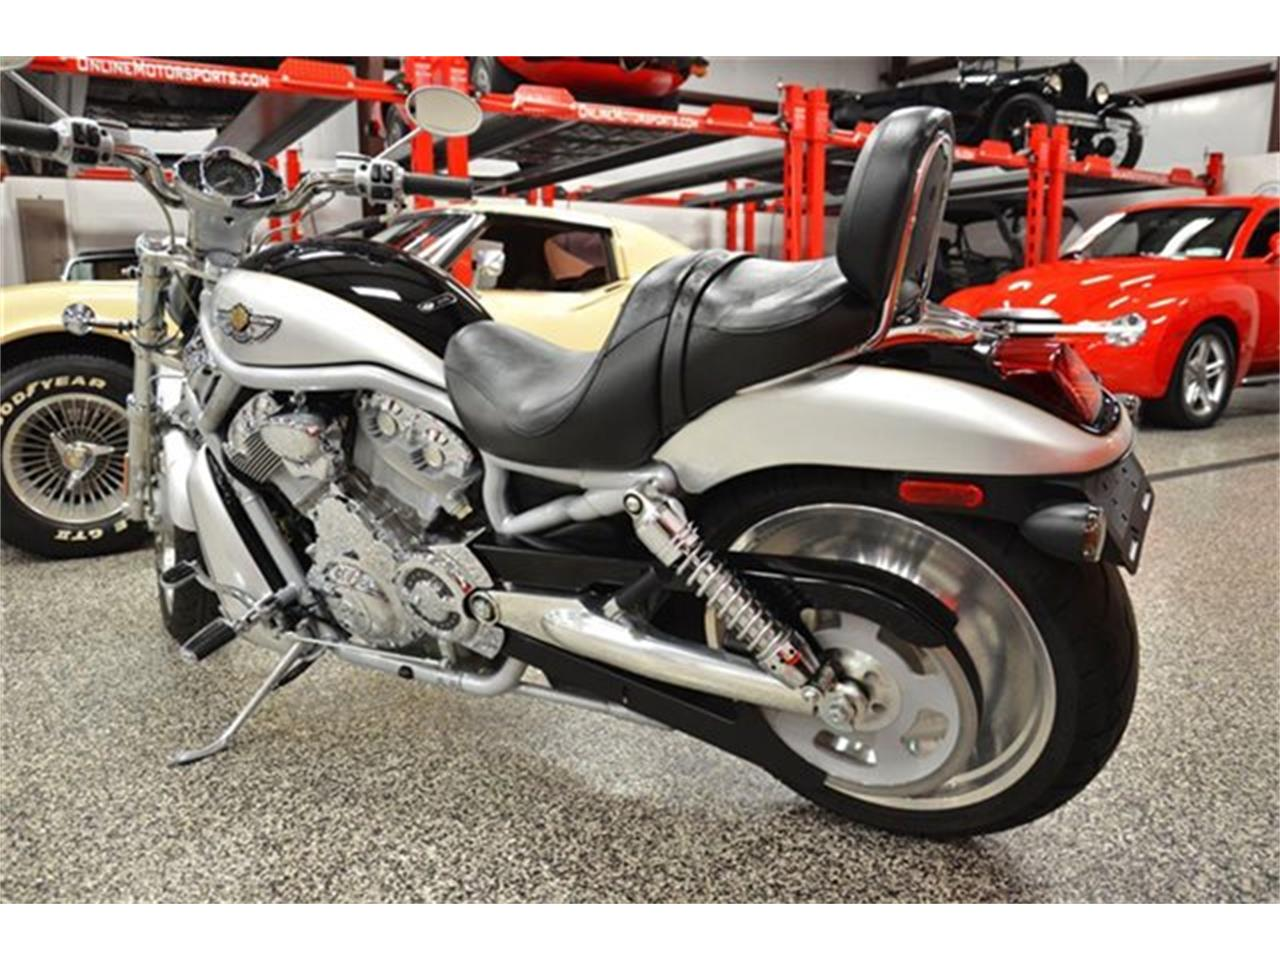 2003 Harley-Davidson VRSC for sale in Plainfield, IL – photo 41